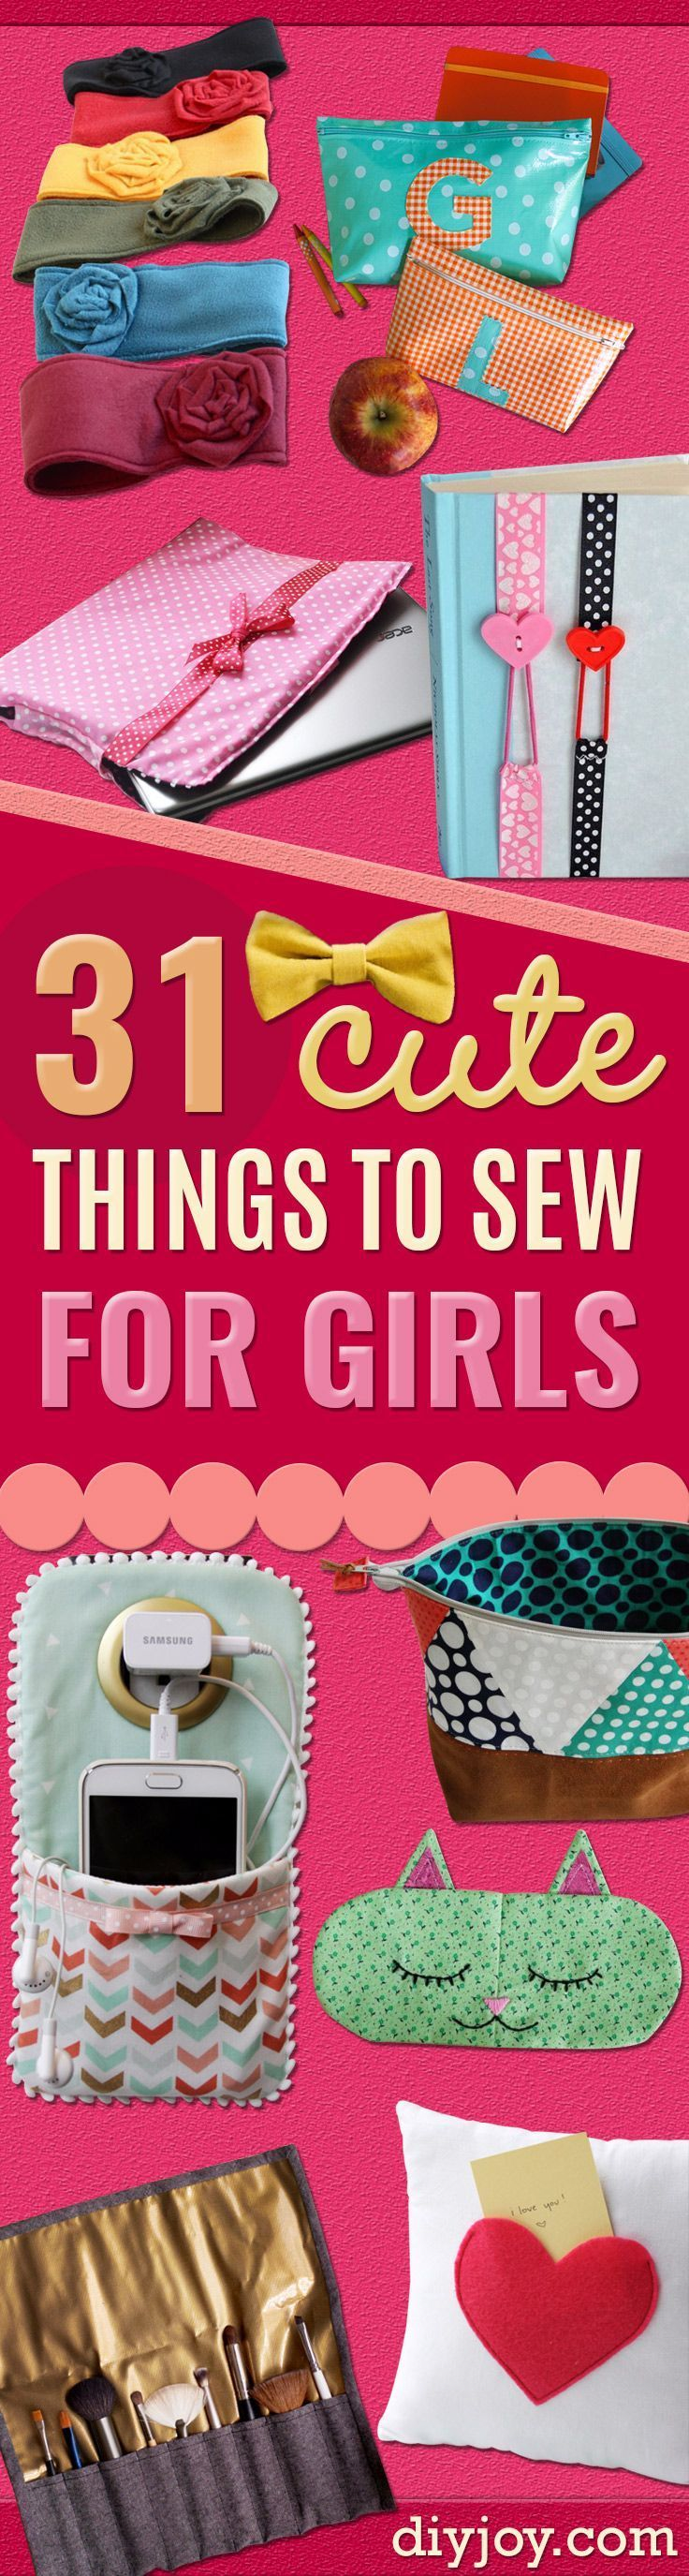 Best Sewing Projects to Make For Girls - Creative Sewing Tutorials for Baby Kids and Teens - Free Patterns and Step by Step Tutorials for Dresses, Blouses, Shirts, Pants, Hats and Bags - Easy DIY Projects and Quick Crafts Ideas http://diyjoy.com/cute-sewing-projects-for-girls